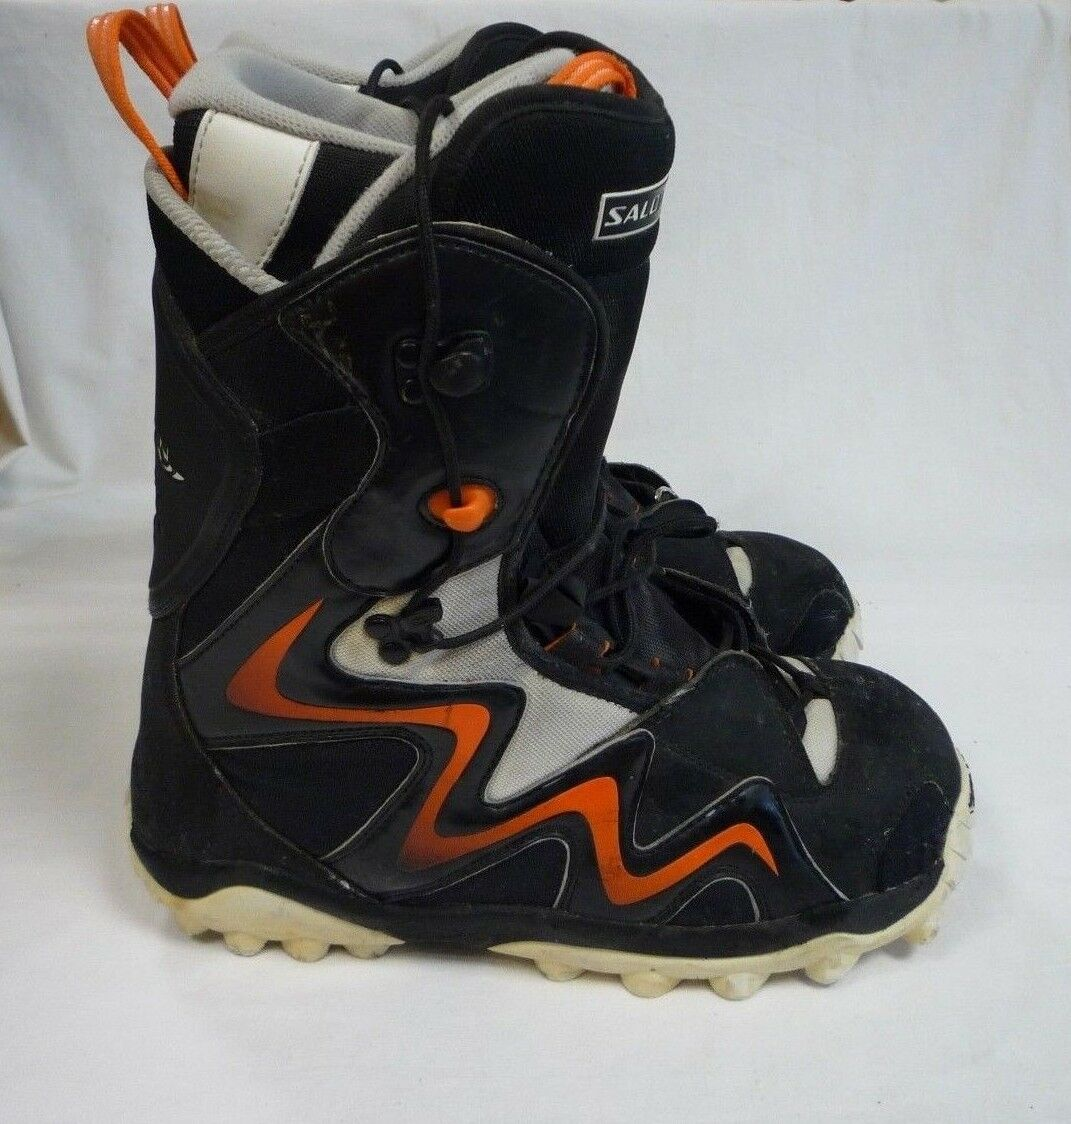 Salomon Snow Boot Black & orange UK 11 Size 11 UK Ideal for Winter or Snow Holiday 9a36aa